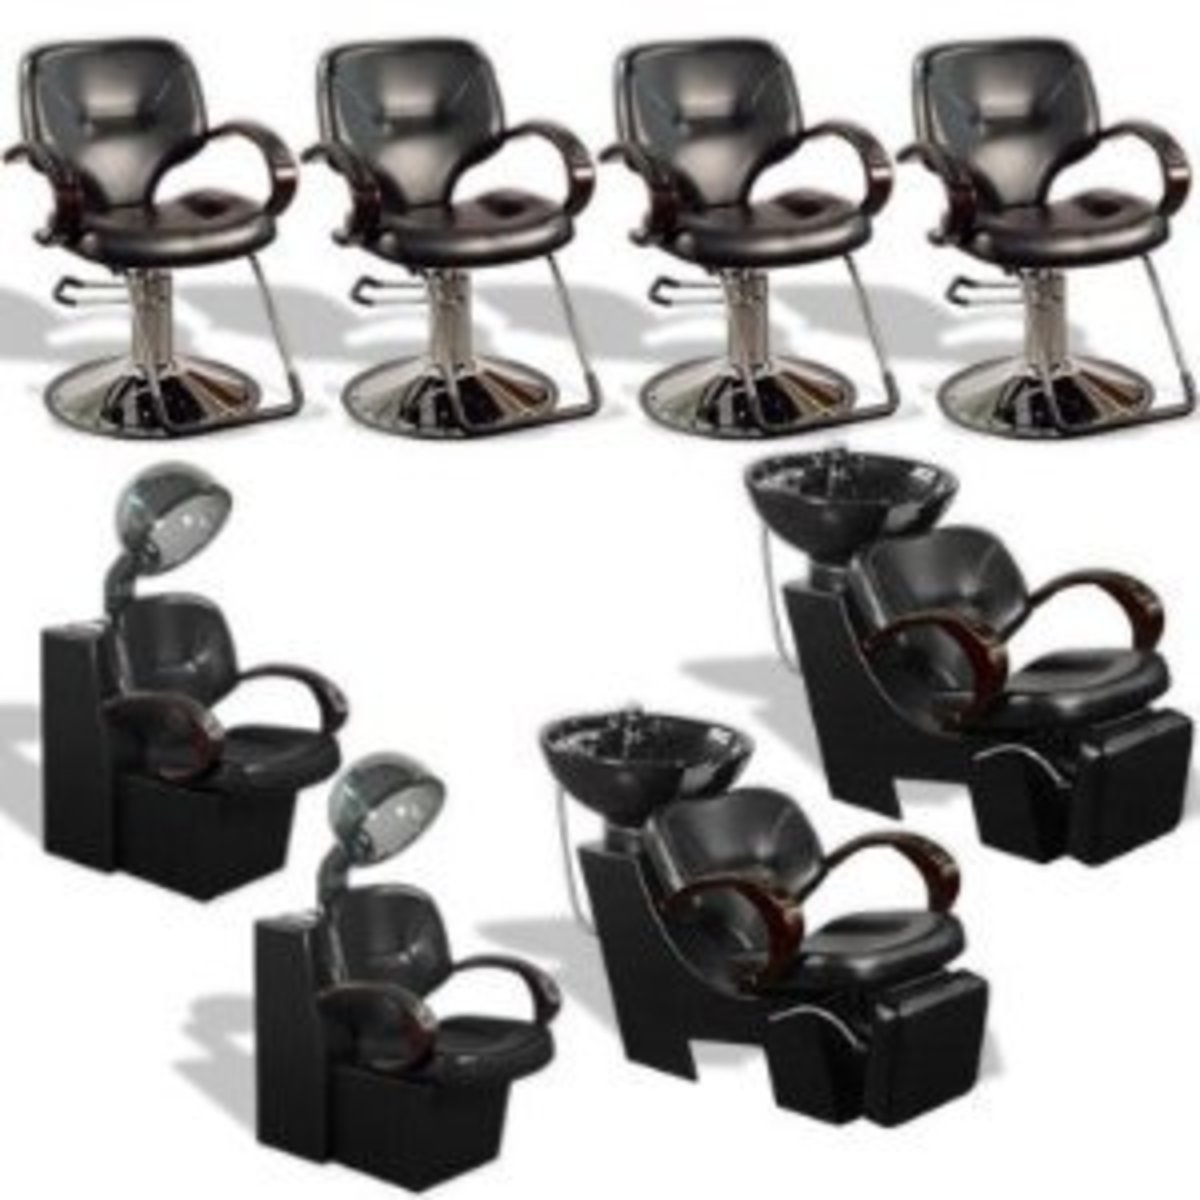 Hair salon equipment buy wholesale hubpages - Wholesale hair salon equipment ...